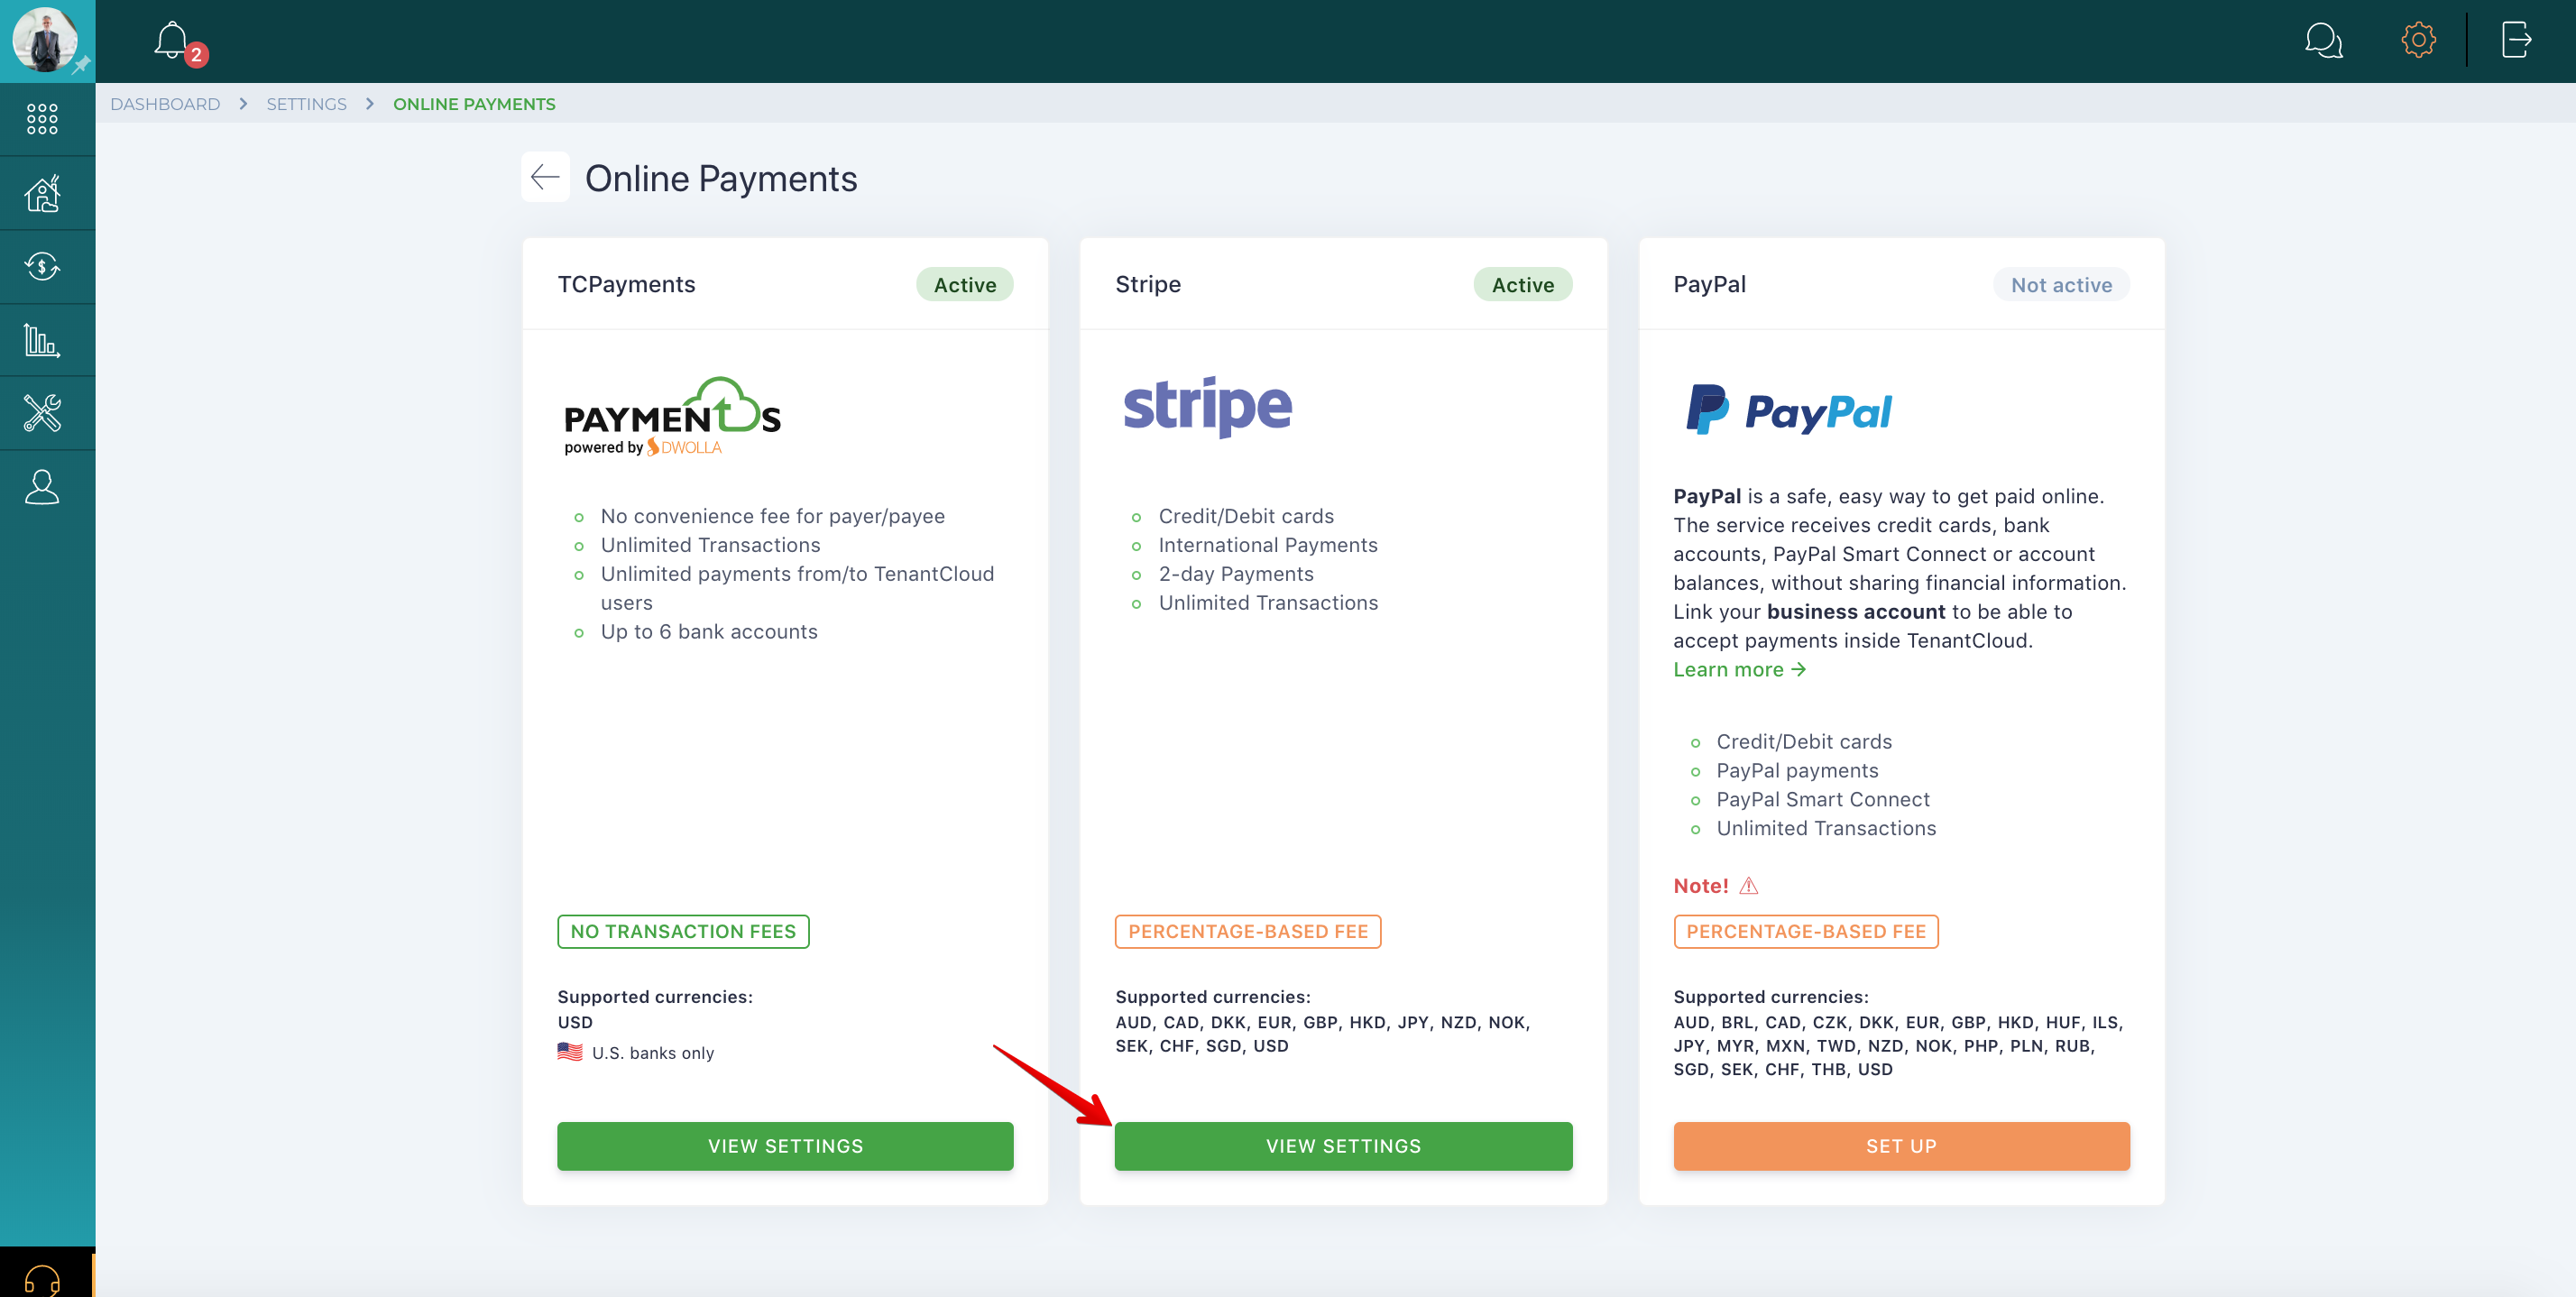 How do I deactivate my Stripe account?